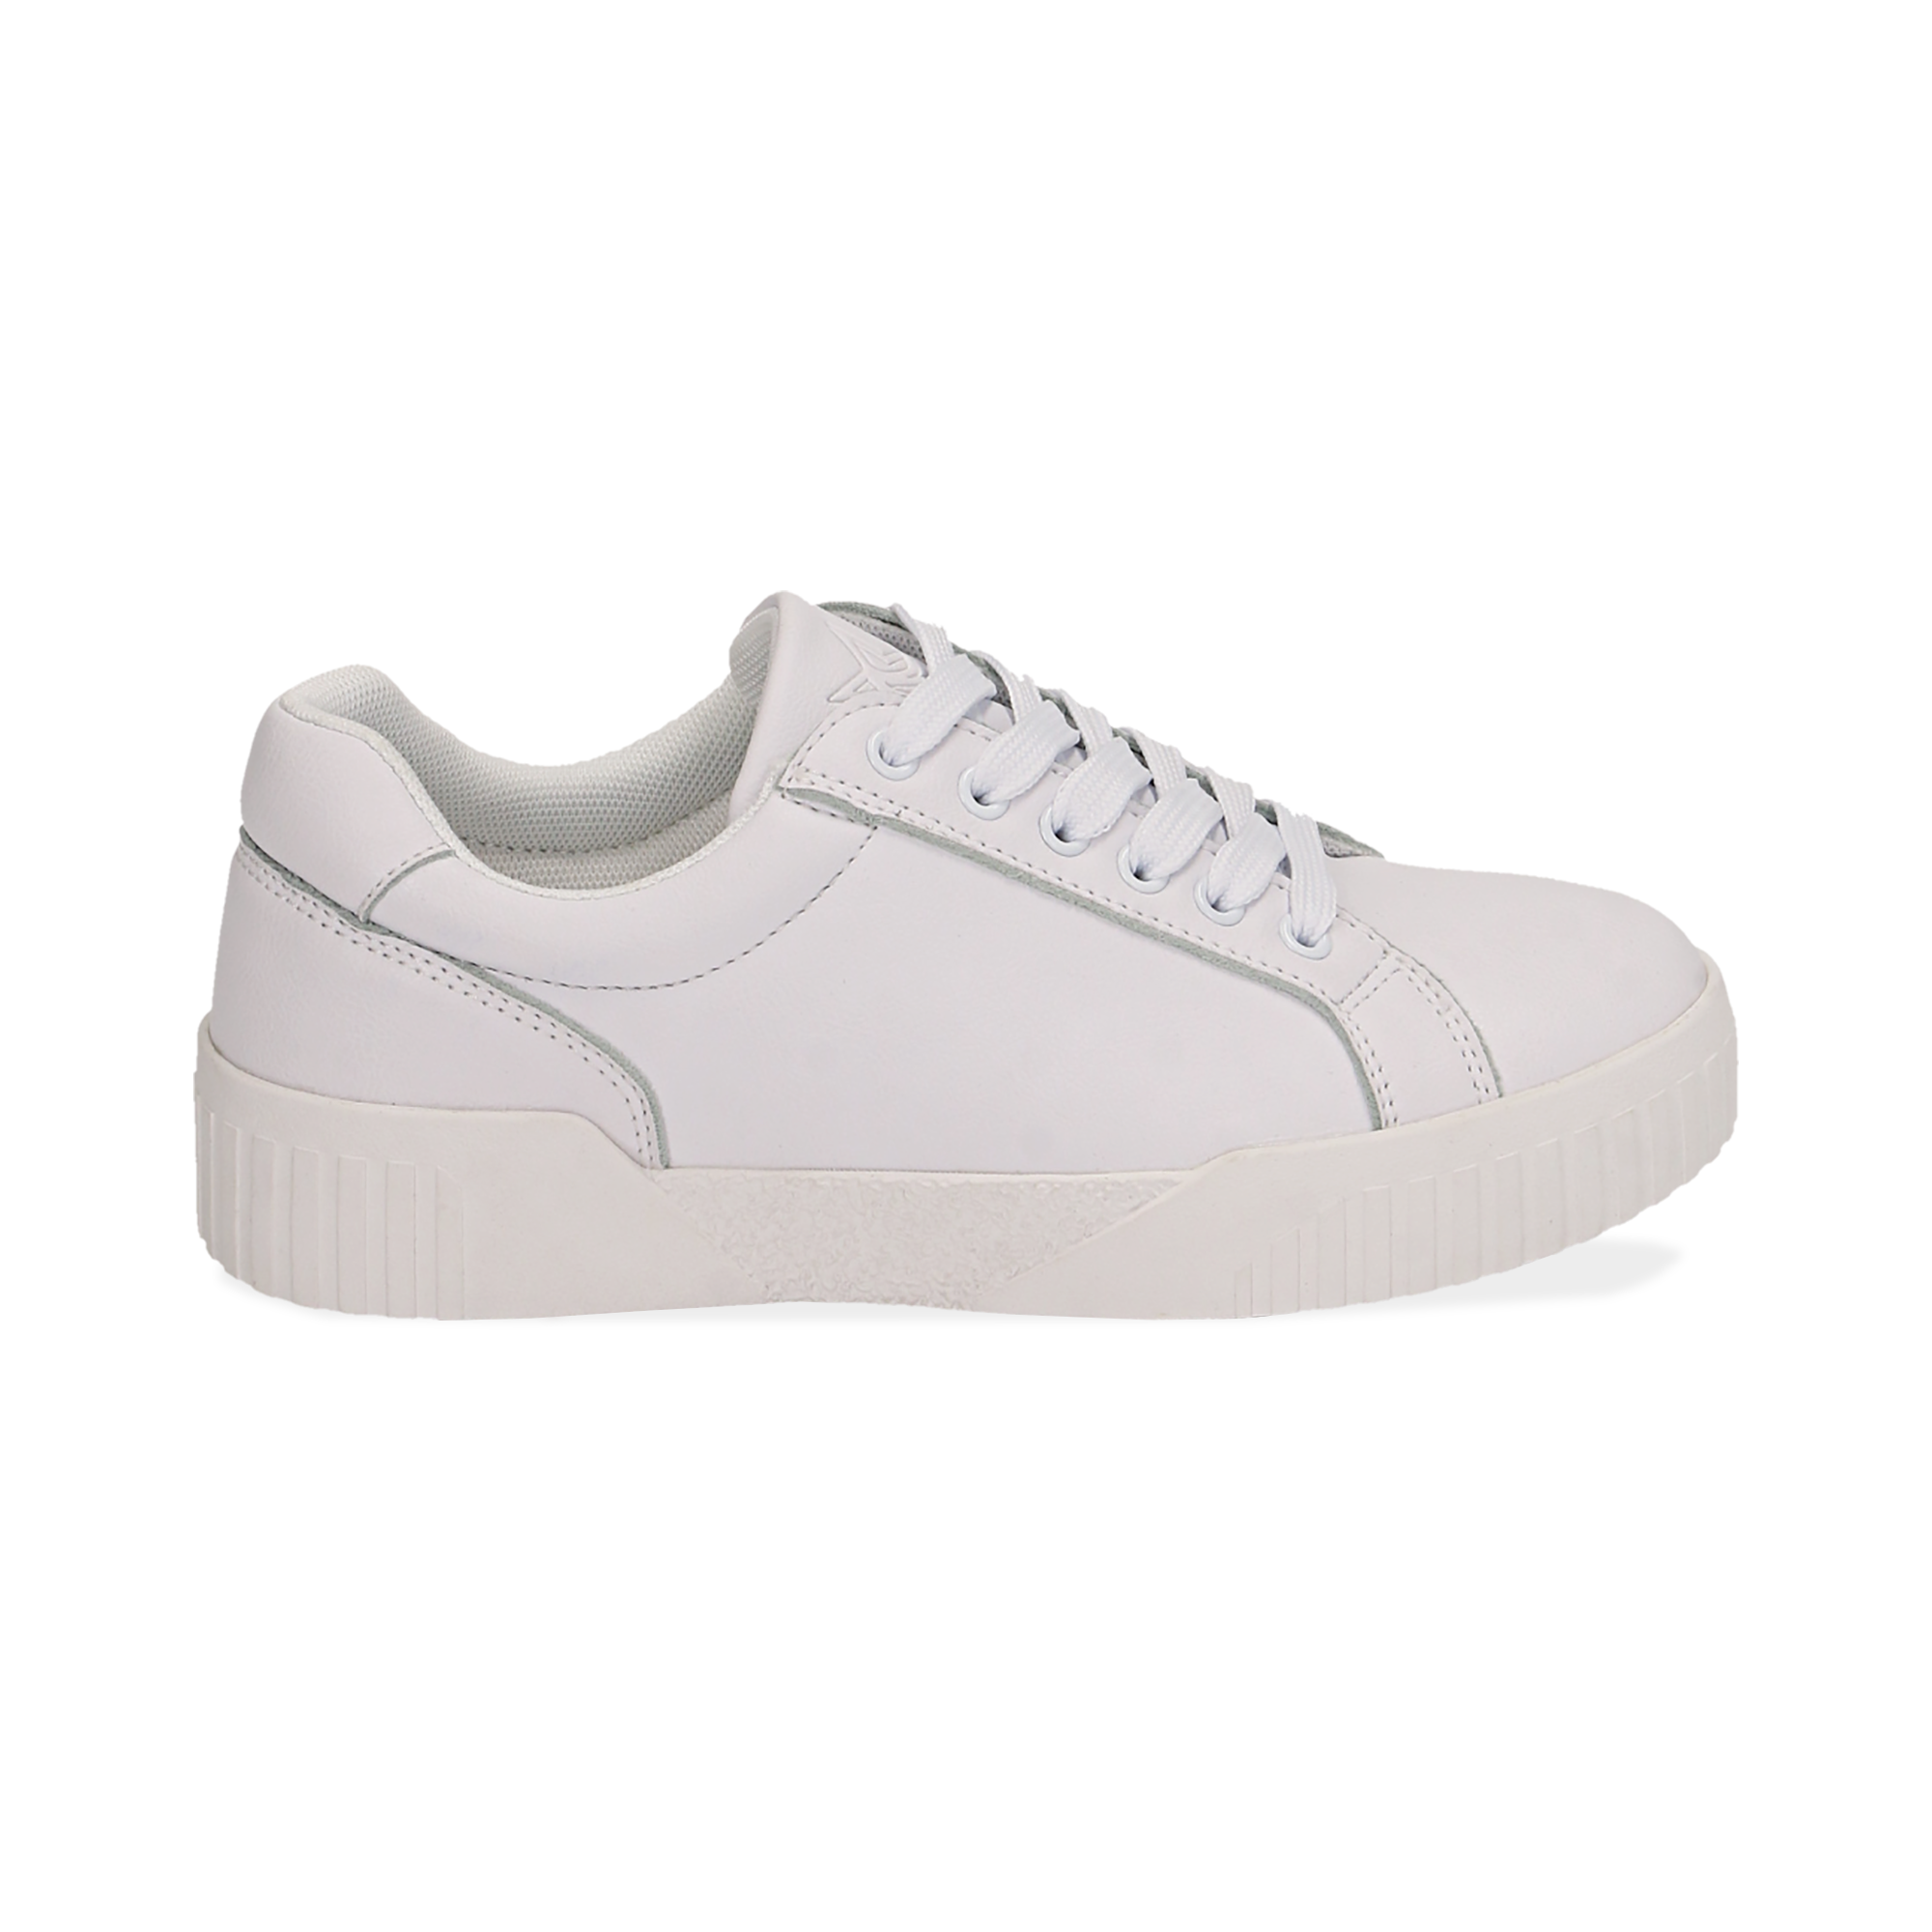 Sneakers en eco-piel color blanco